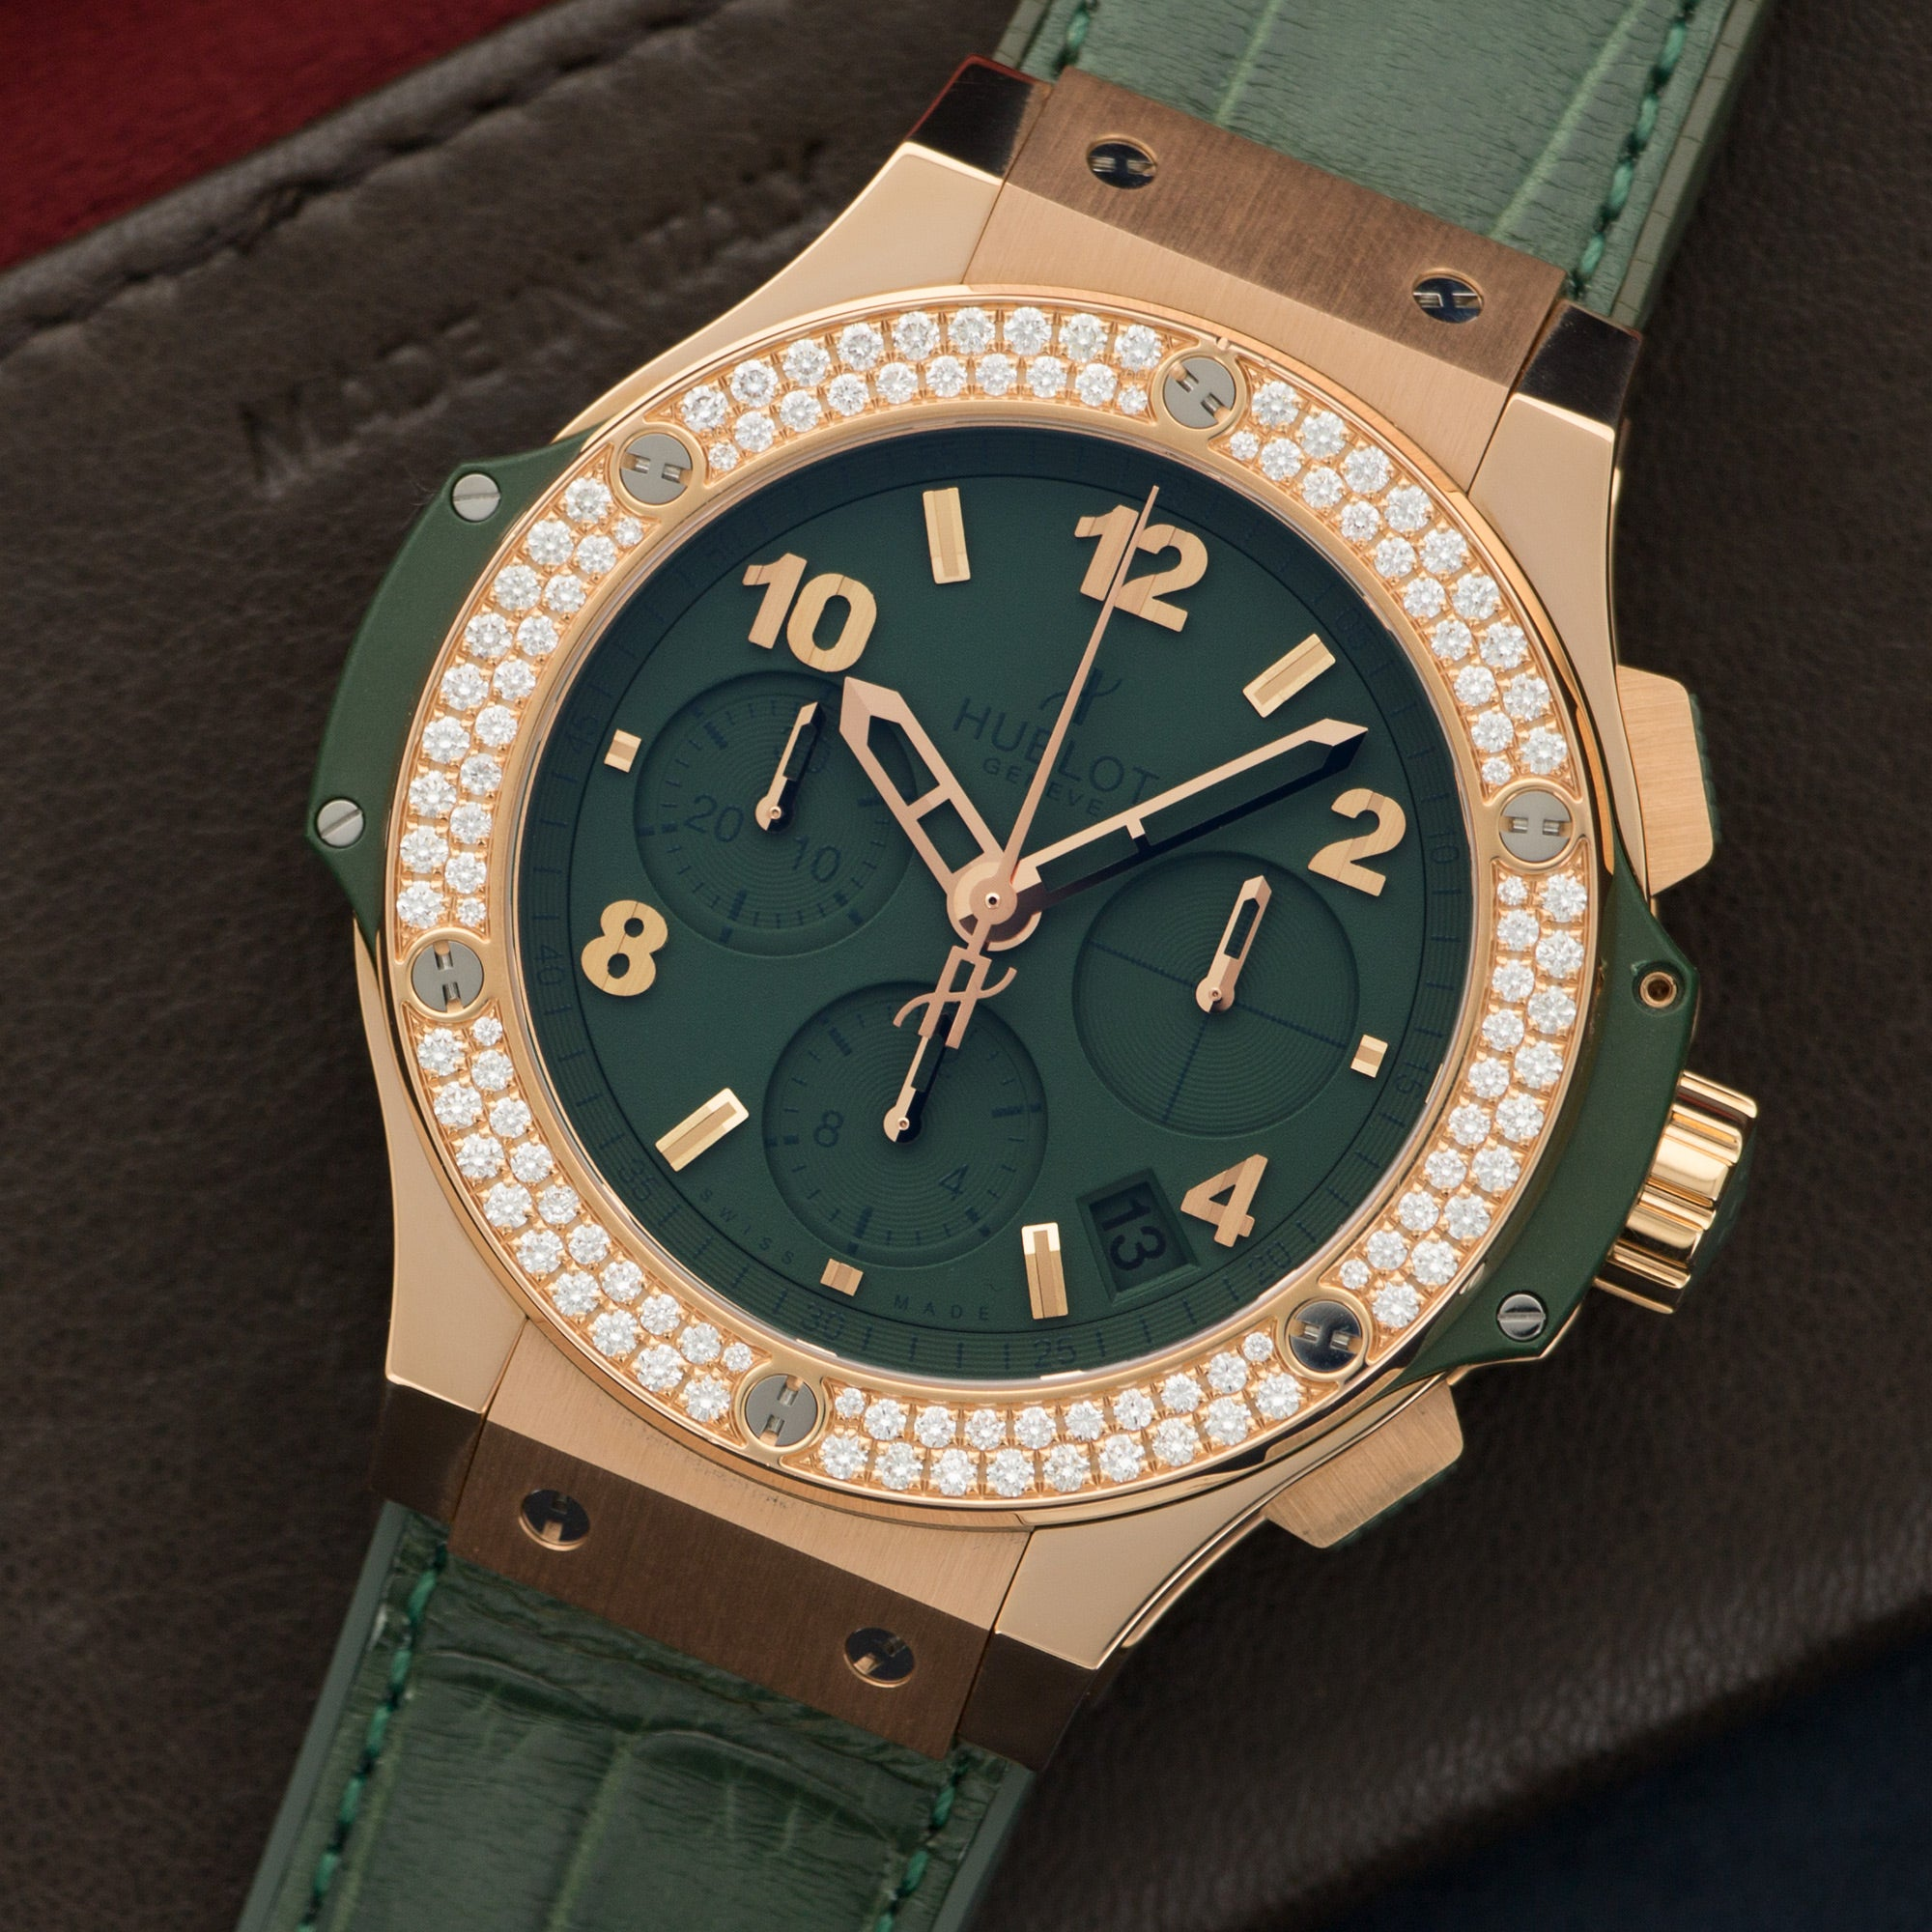 Hublot Tutti Frutti 341.PV.5290.LR.1104 18k RG  Unworn Unisex 18k RG Dark Green 41mm Automatic Current Green Crocodile (u Box, Manuals, Warranty Card